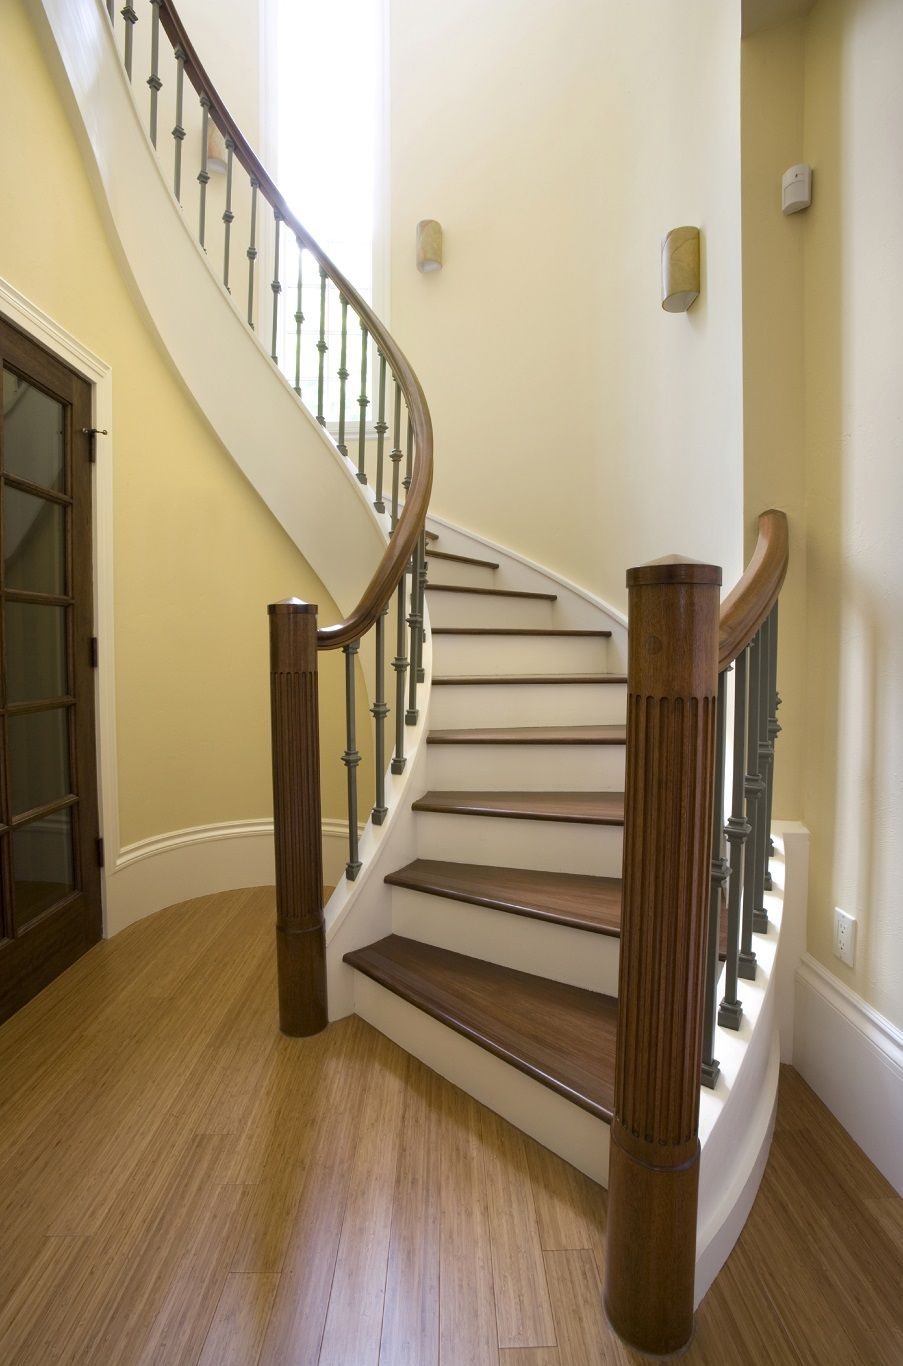 Non slip paint for stairs - Non Slip Traction For Slippery Stairs Wood Bamboo Tile Laminate